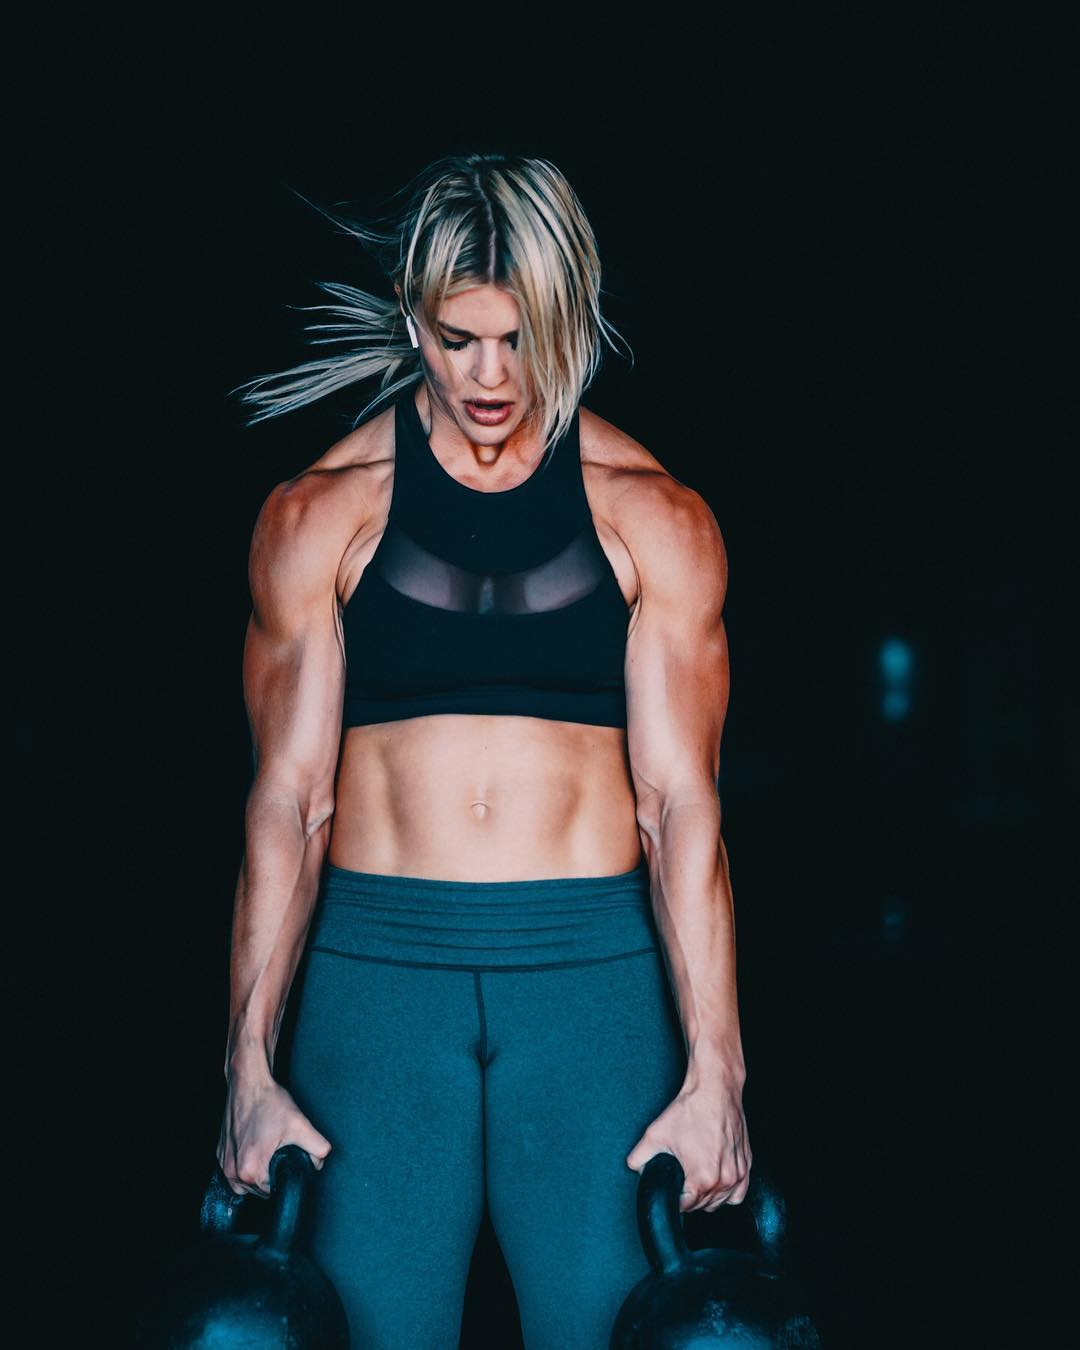 Pin on CrossFit